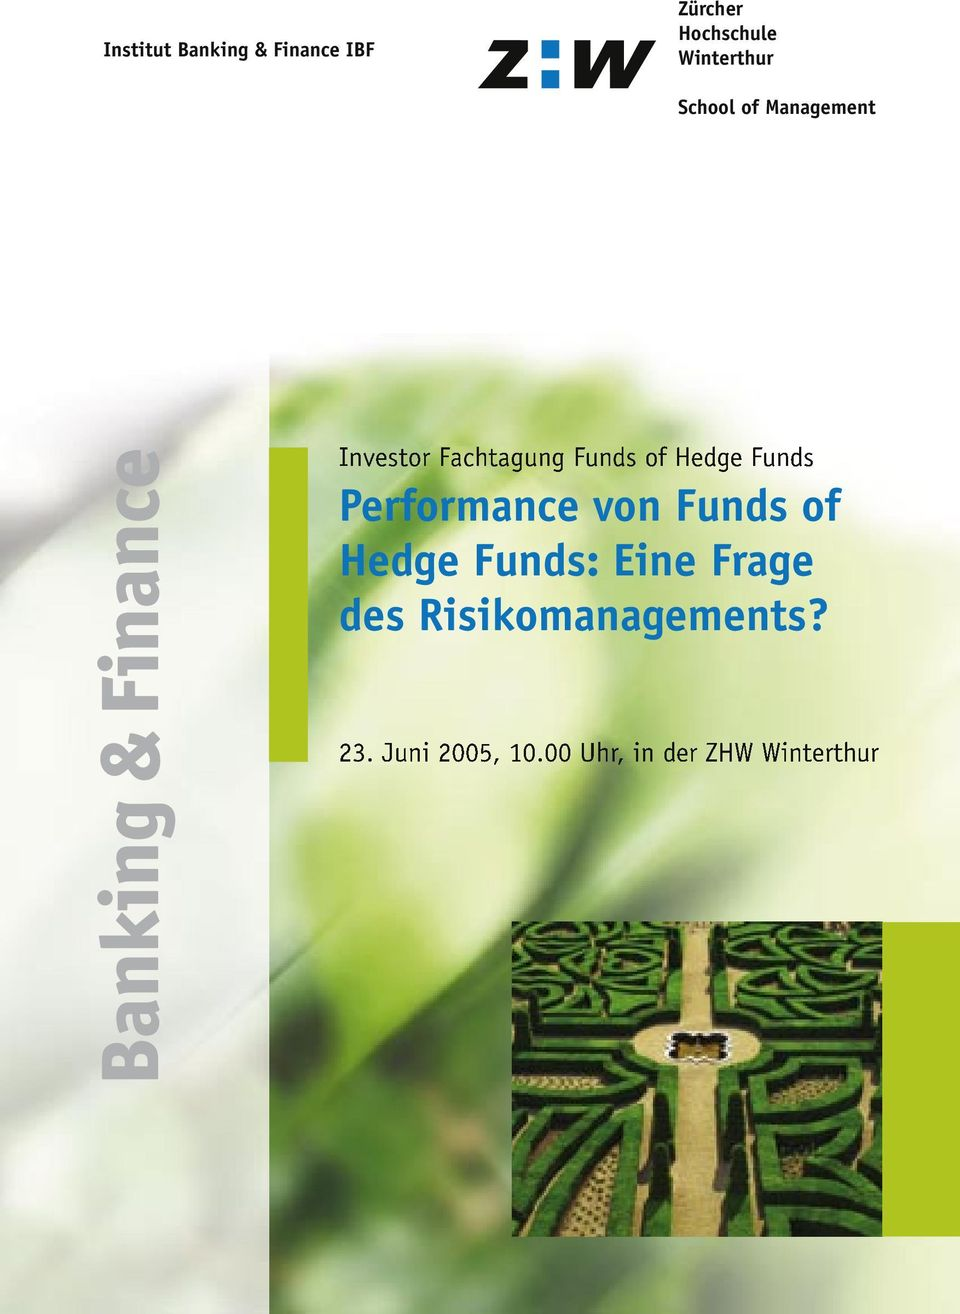 of Hedge Funds Performance von Funds of Hedge Funds: Eine Frage